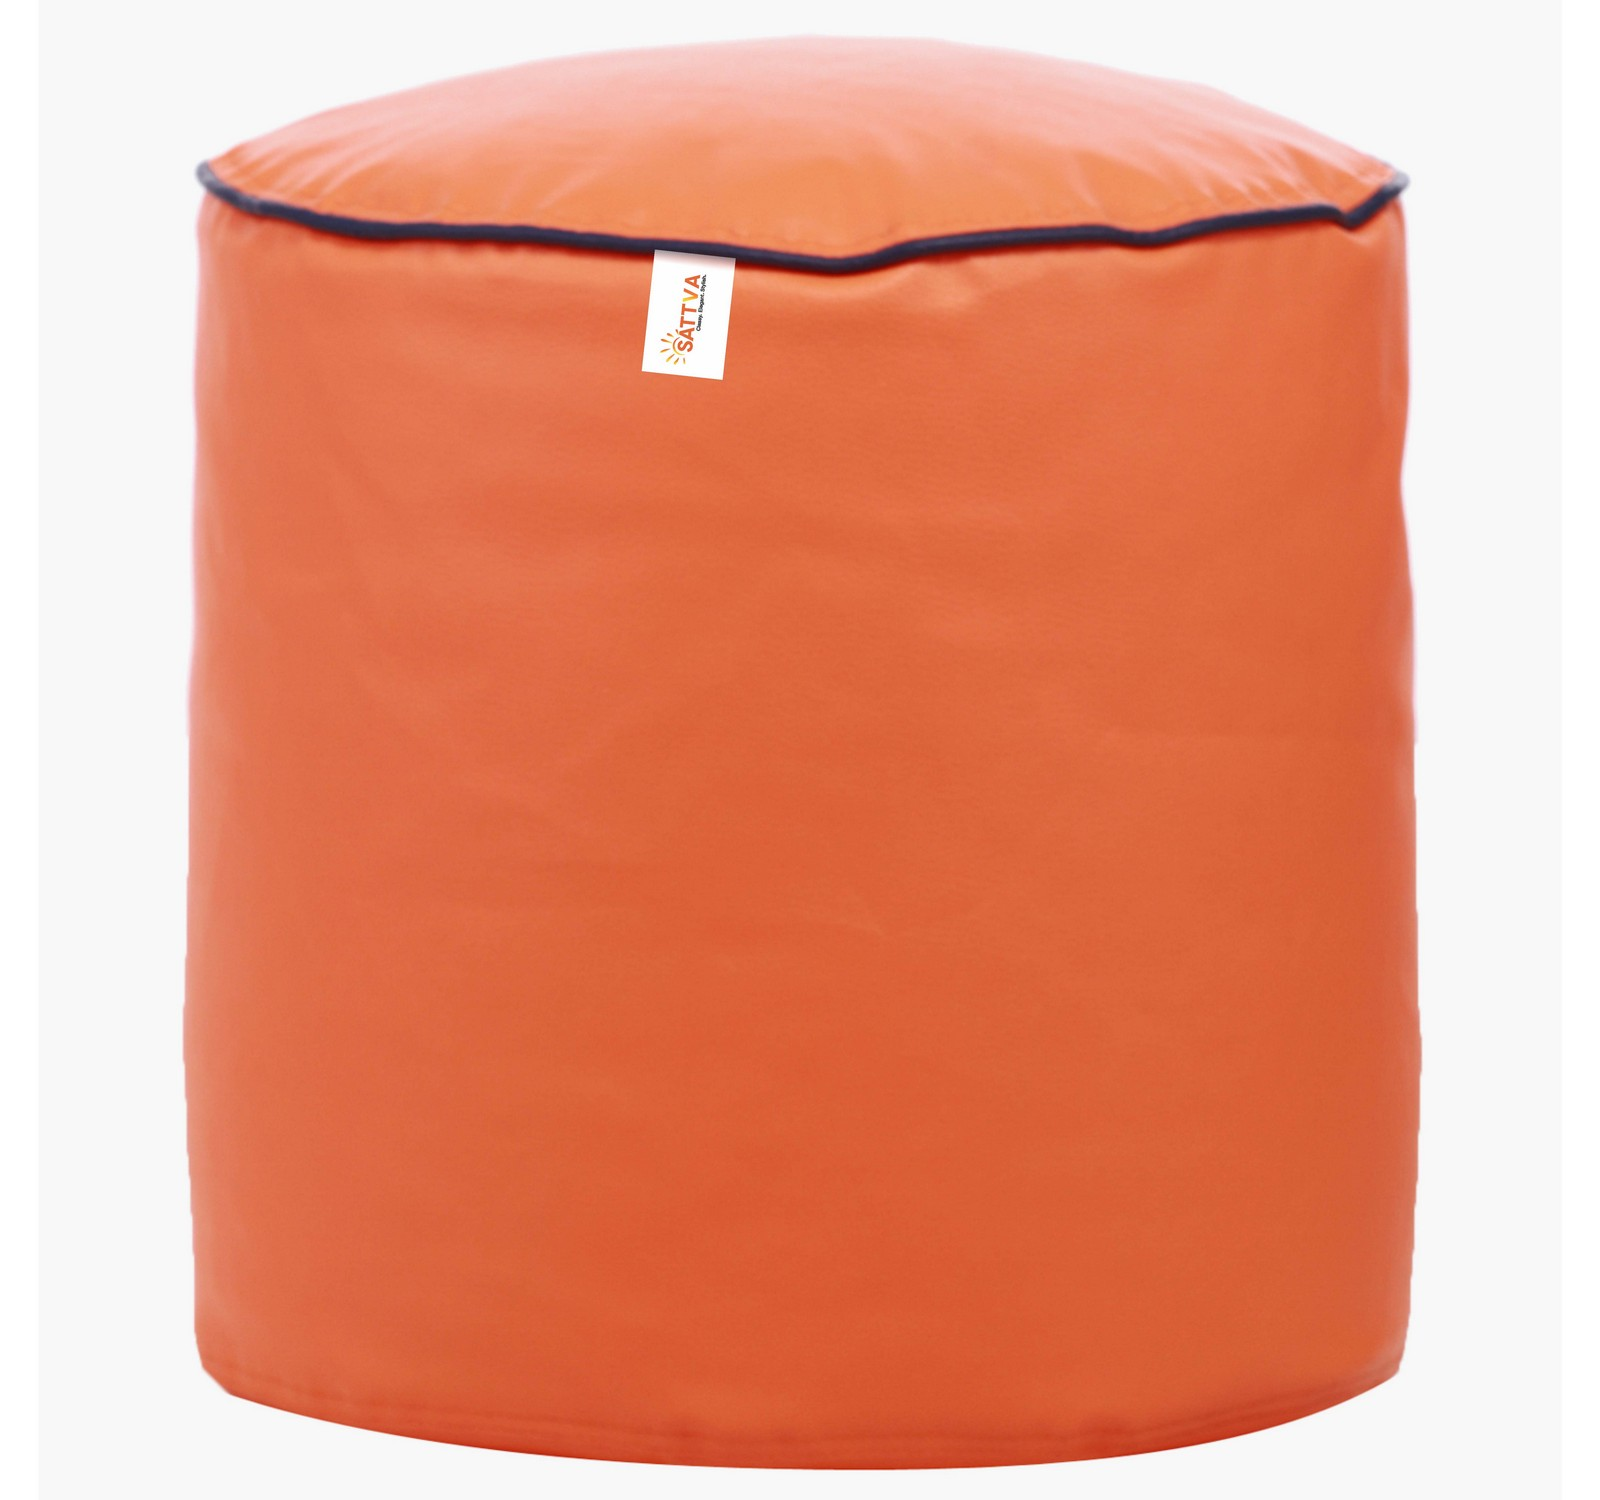 Sattva Combo Muddha Bean Bag With Piping Design And Round Foostool -Filled Black Pink Piping - XXXL (Orange With Navy Blue Piping,XXXL)